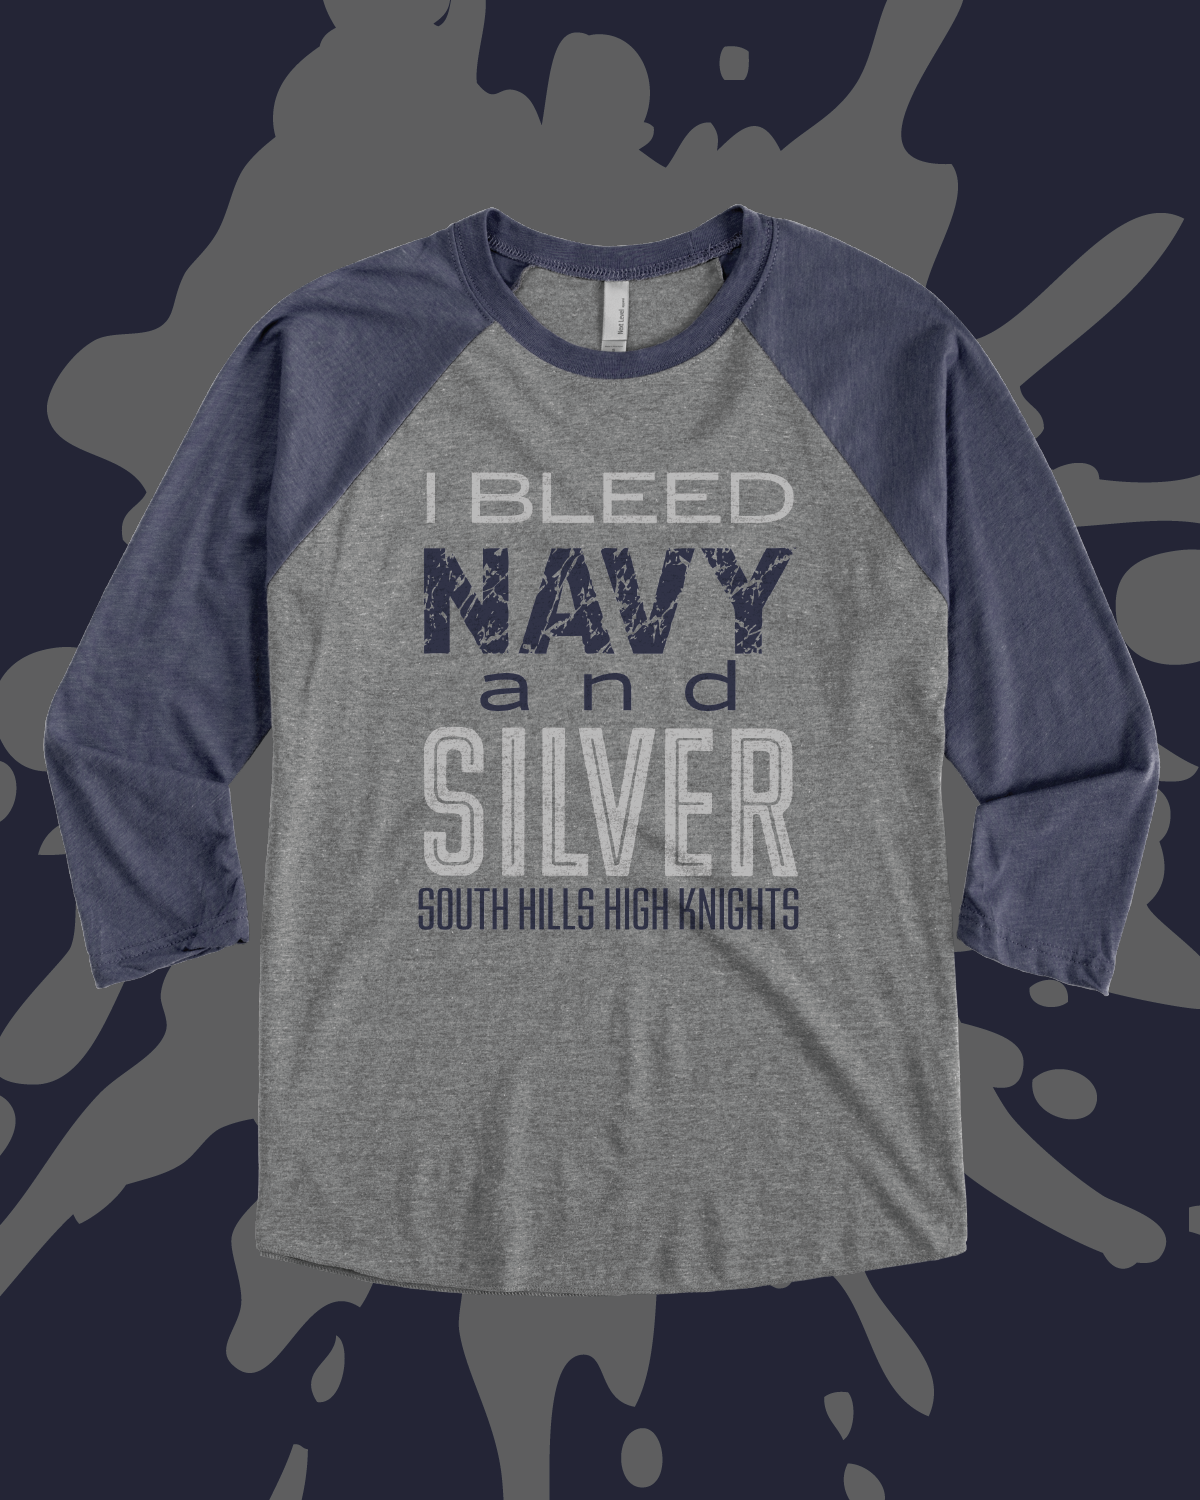 2ce5278728d73 I Bleed Navy and Silver - design idea for custom raglan shirt ...